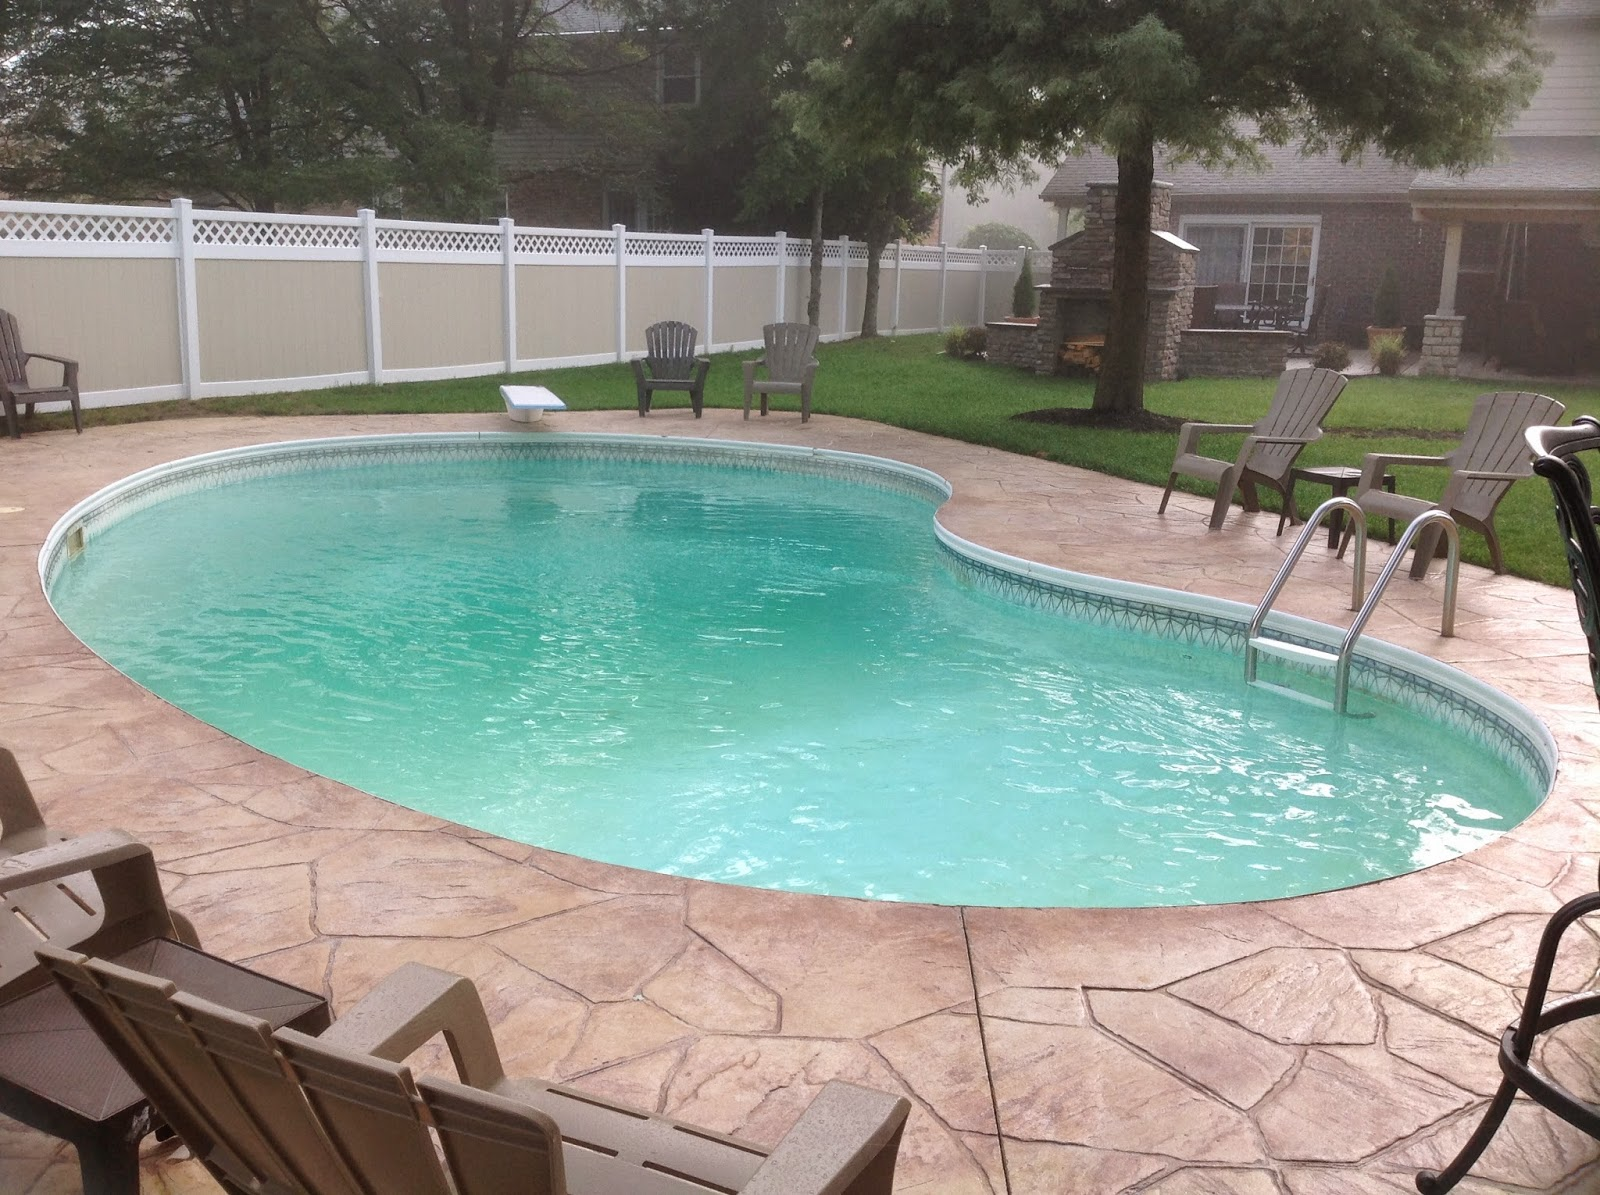 Pool coping supply - Witte pool liner ...